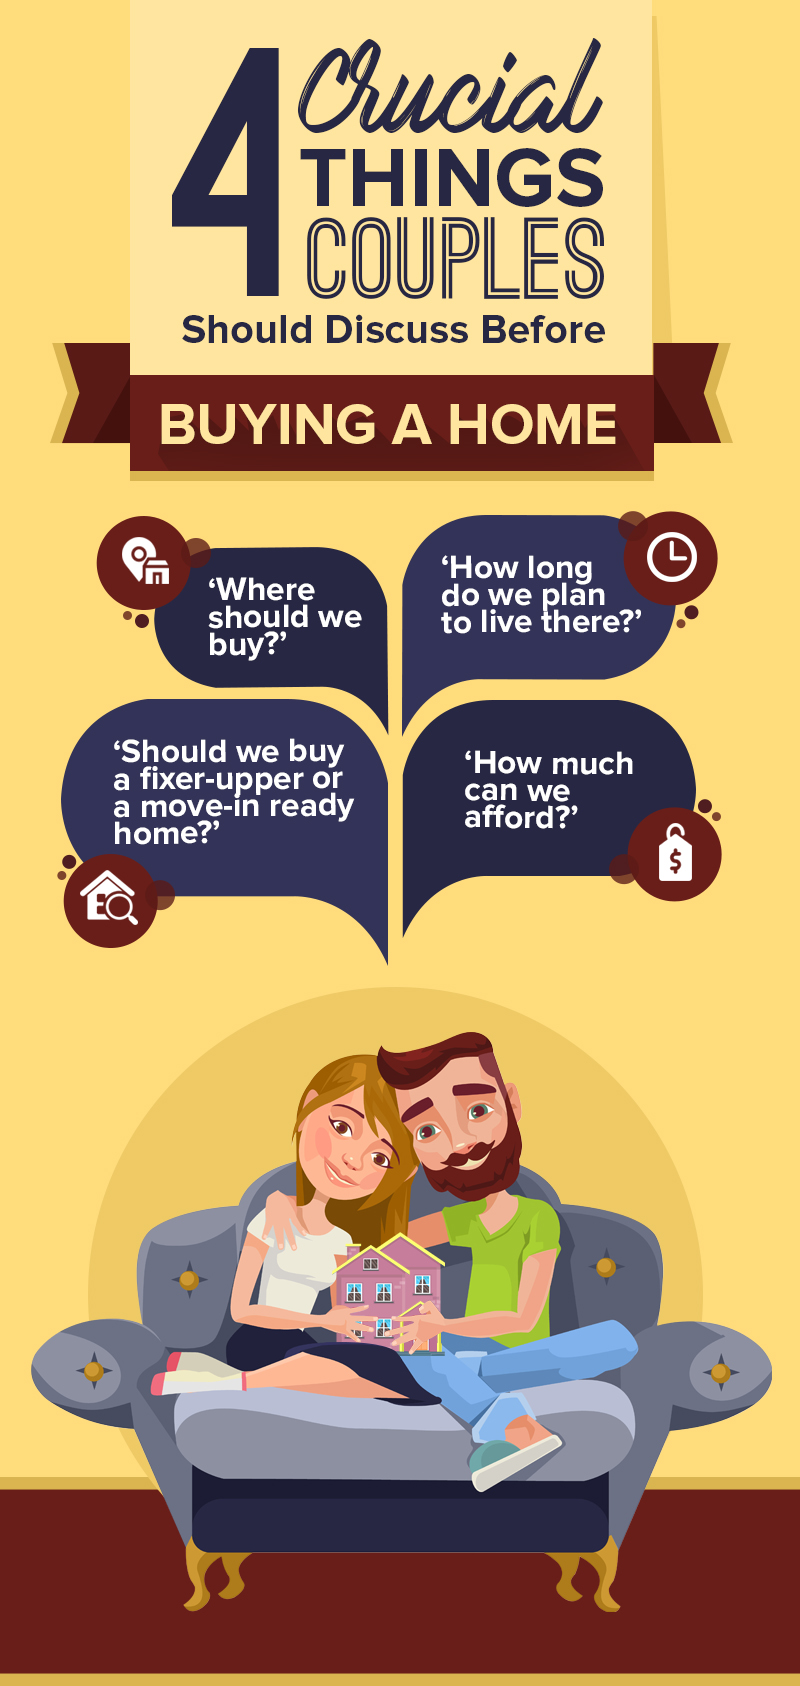 Rings or House Keys? 4 Crucial Things Couples Should Discuss Before Buying A Home